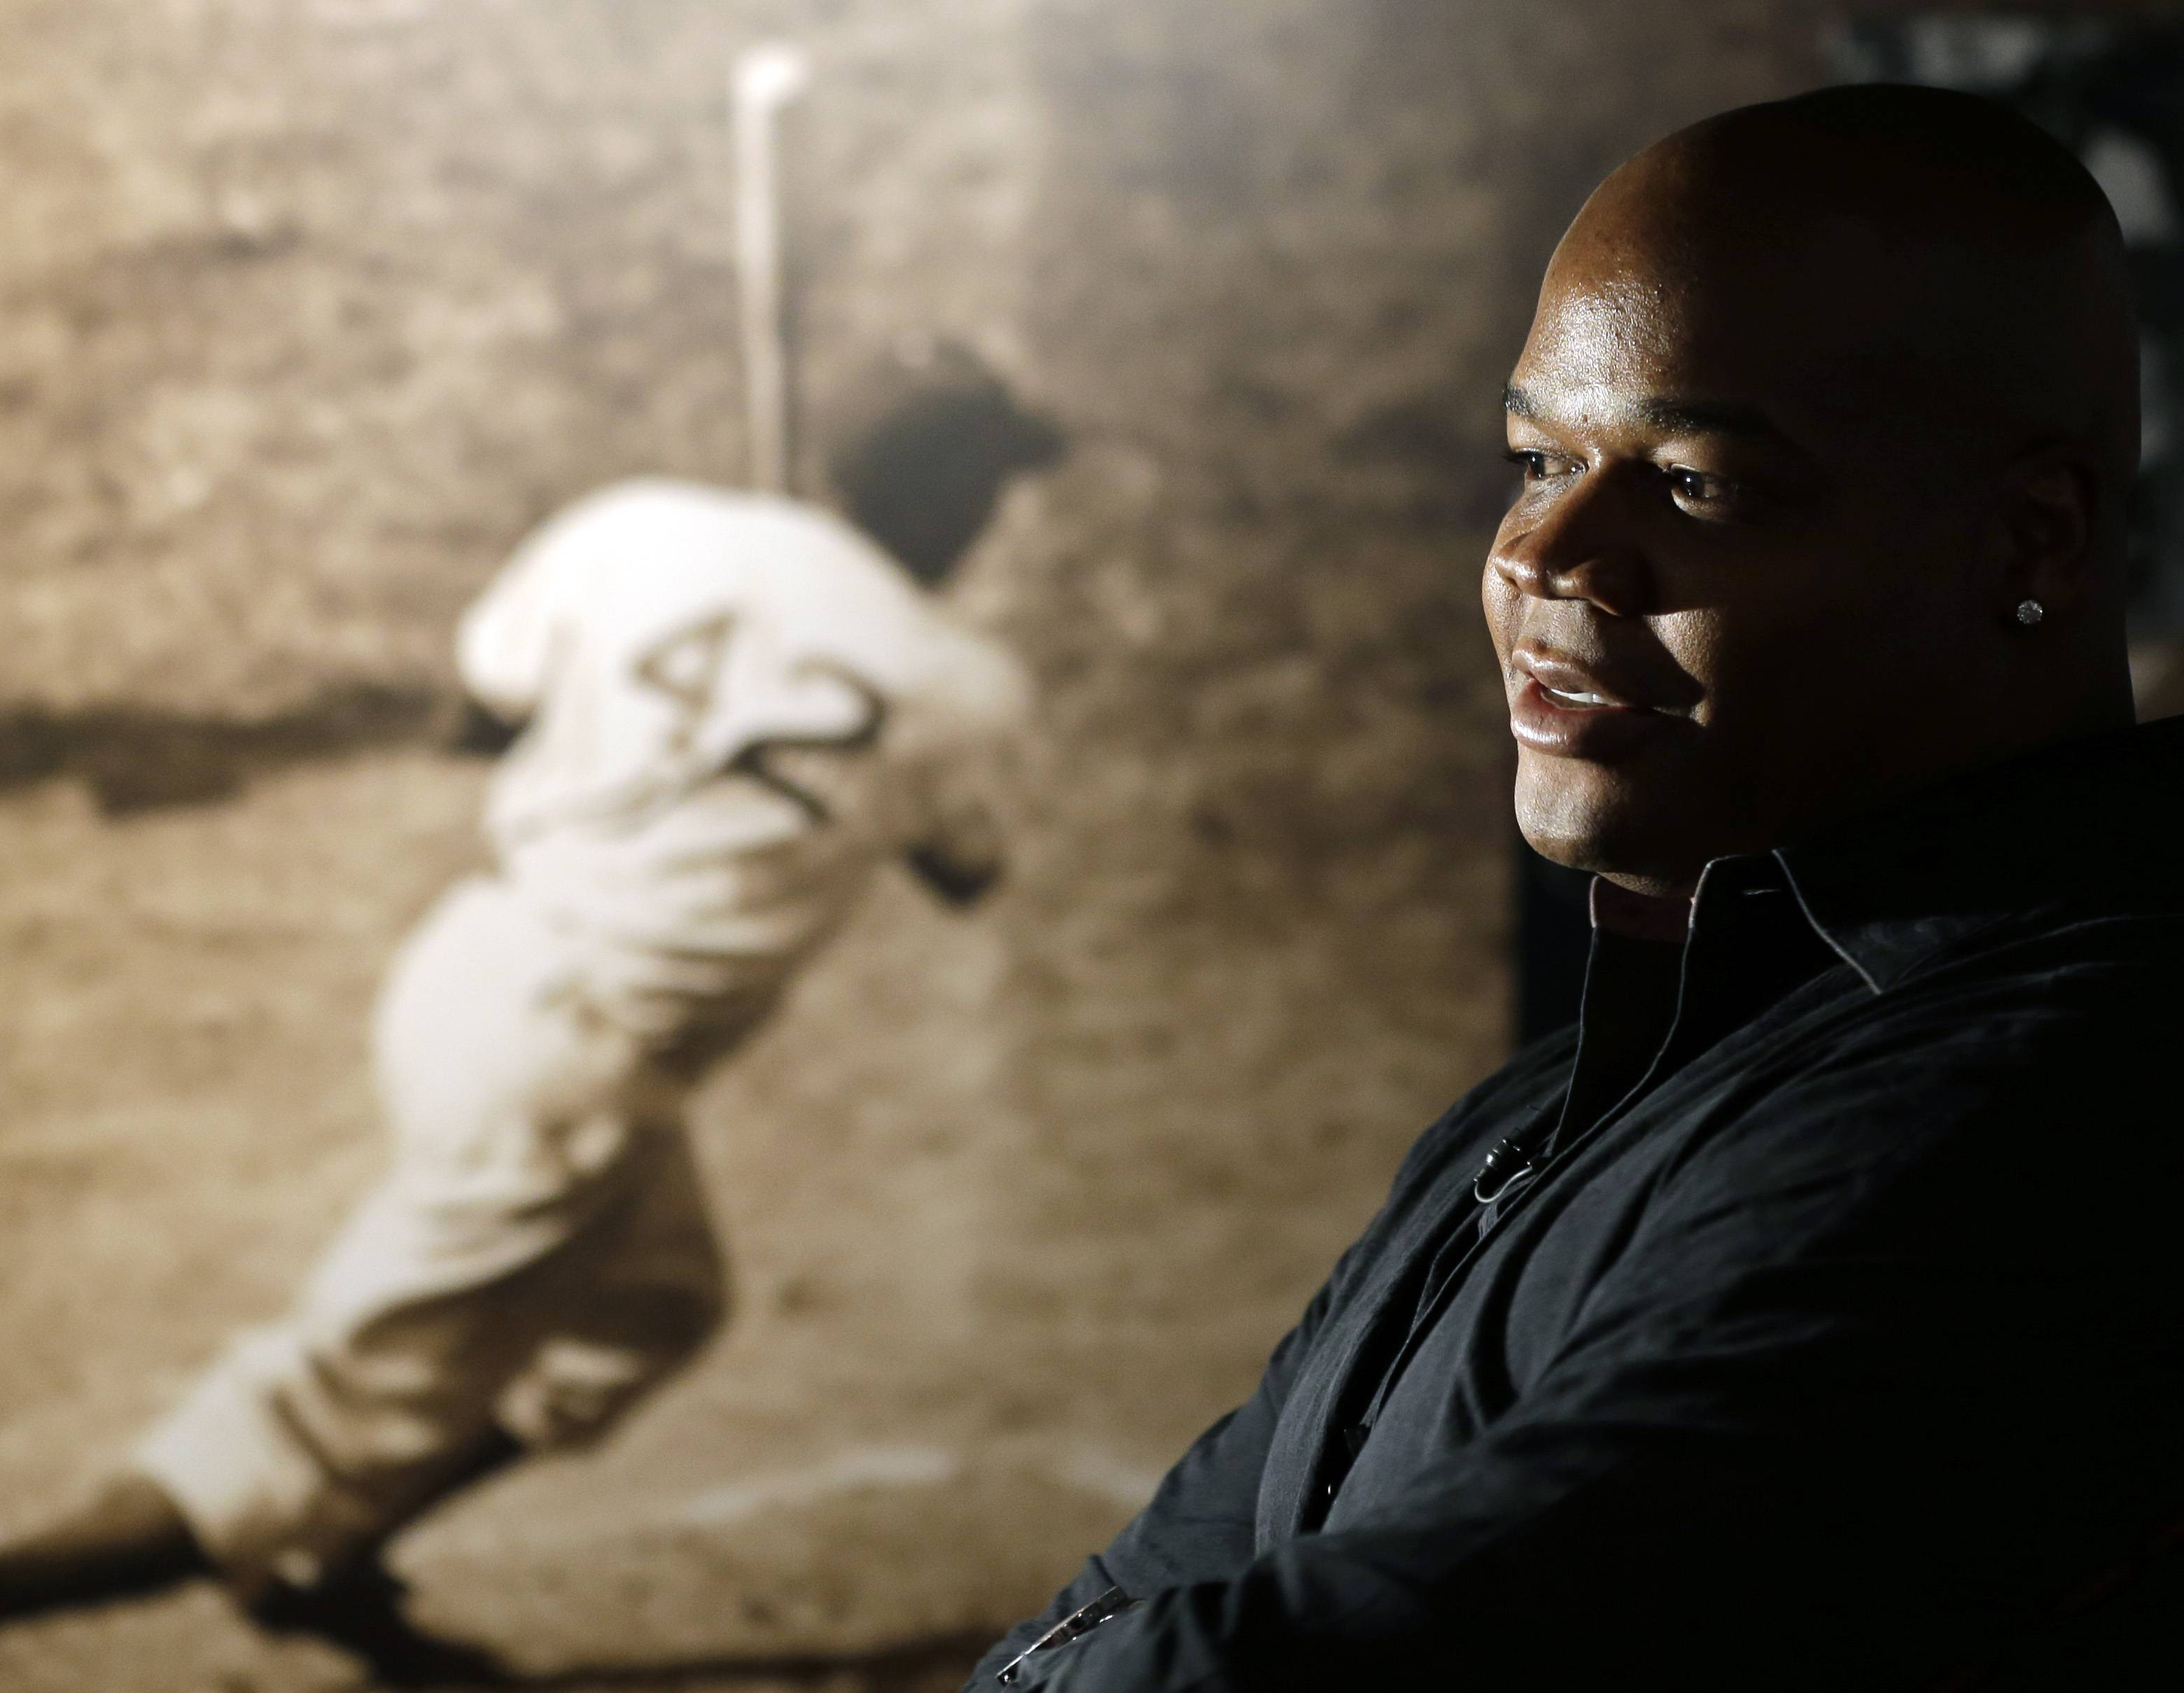 Frank Thomas visits a Jackie Robinson exhibit Monday during his orientation visit at the Baseball Hall of Fame in Cooperstown, N.Y.